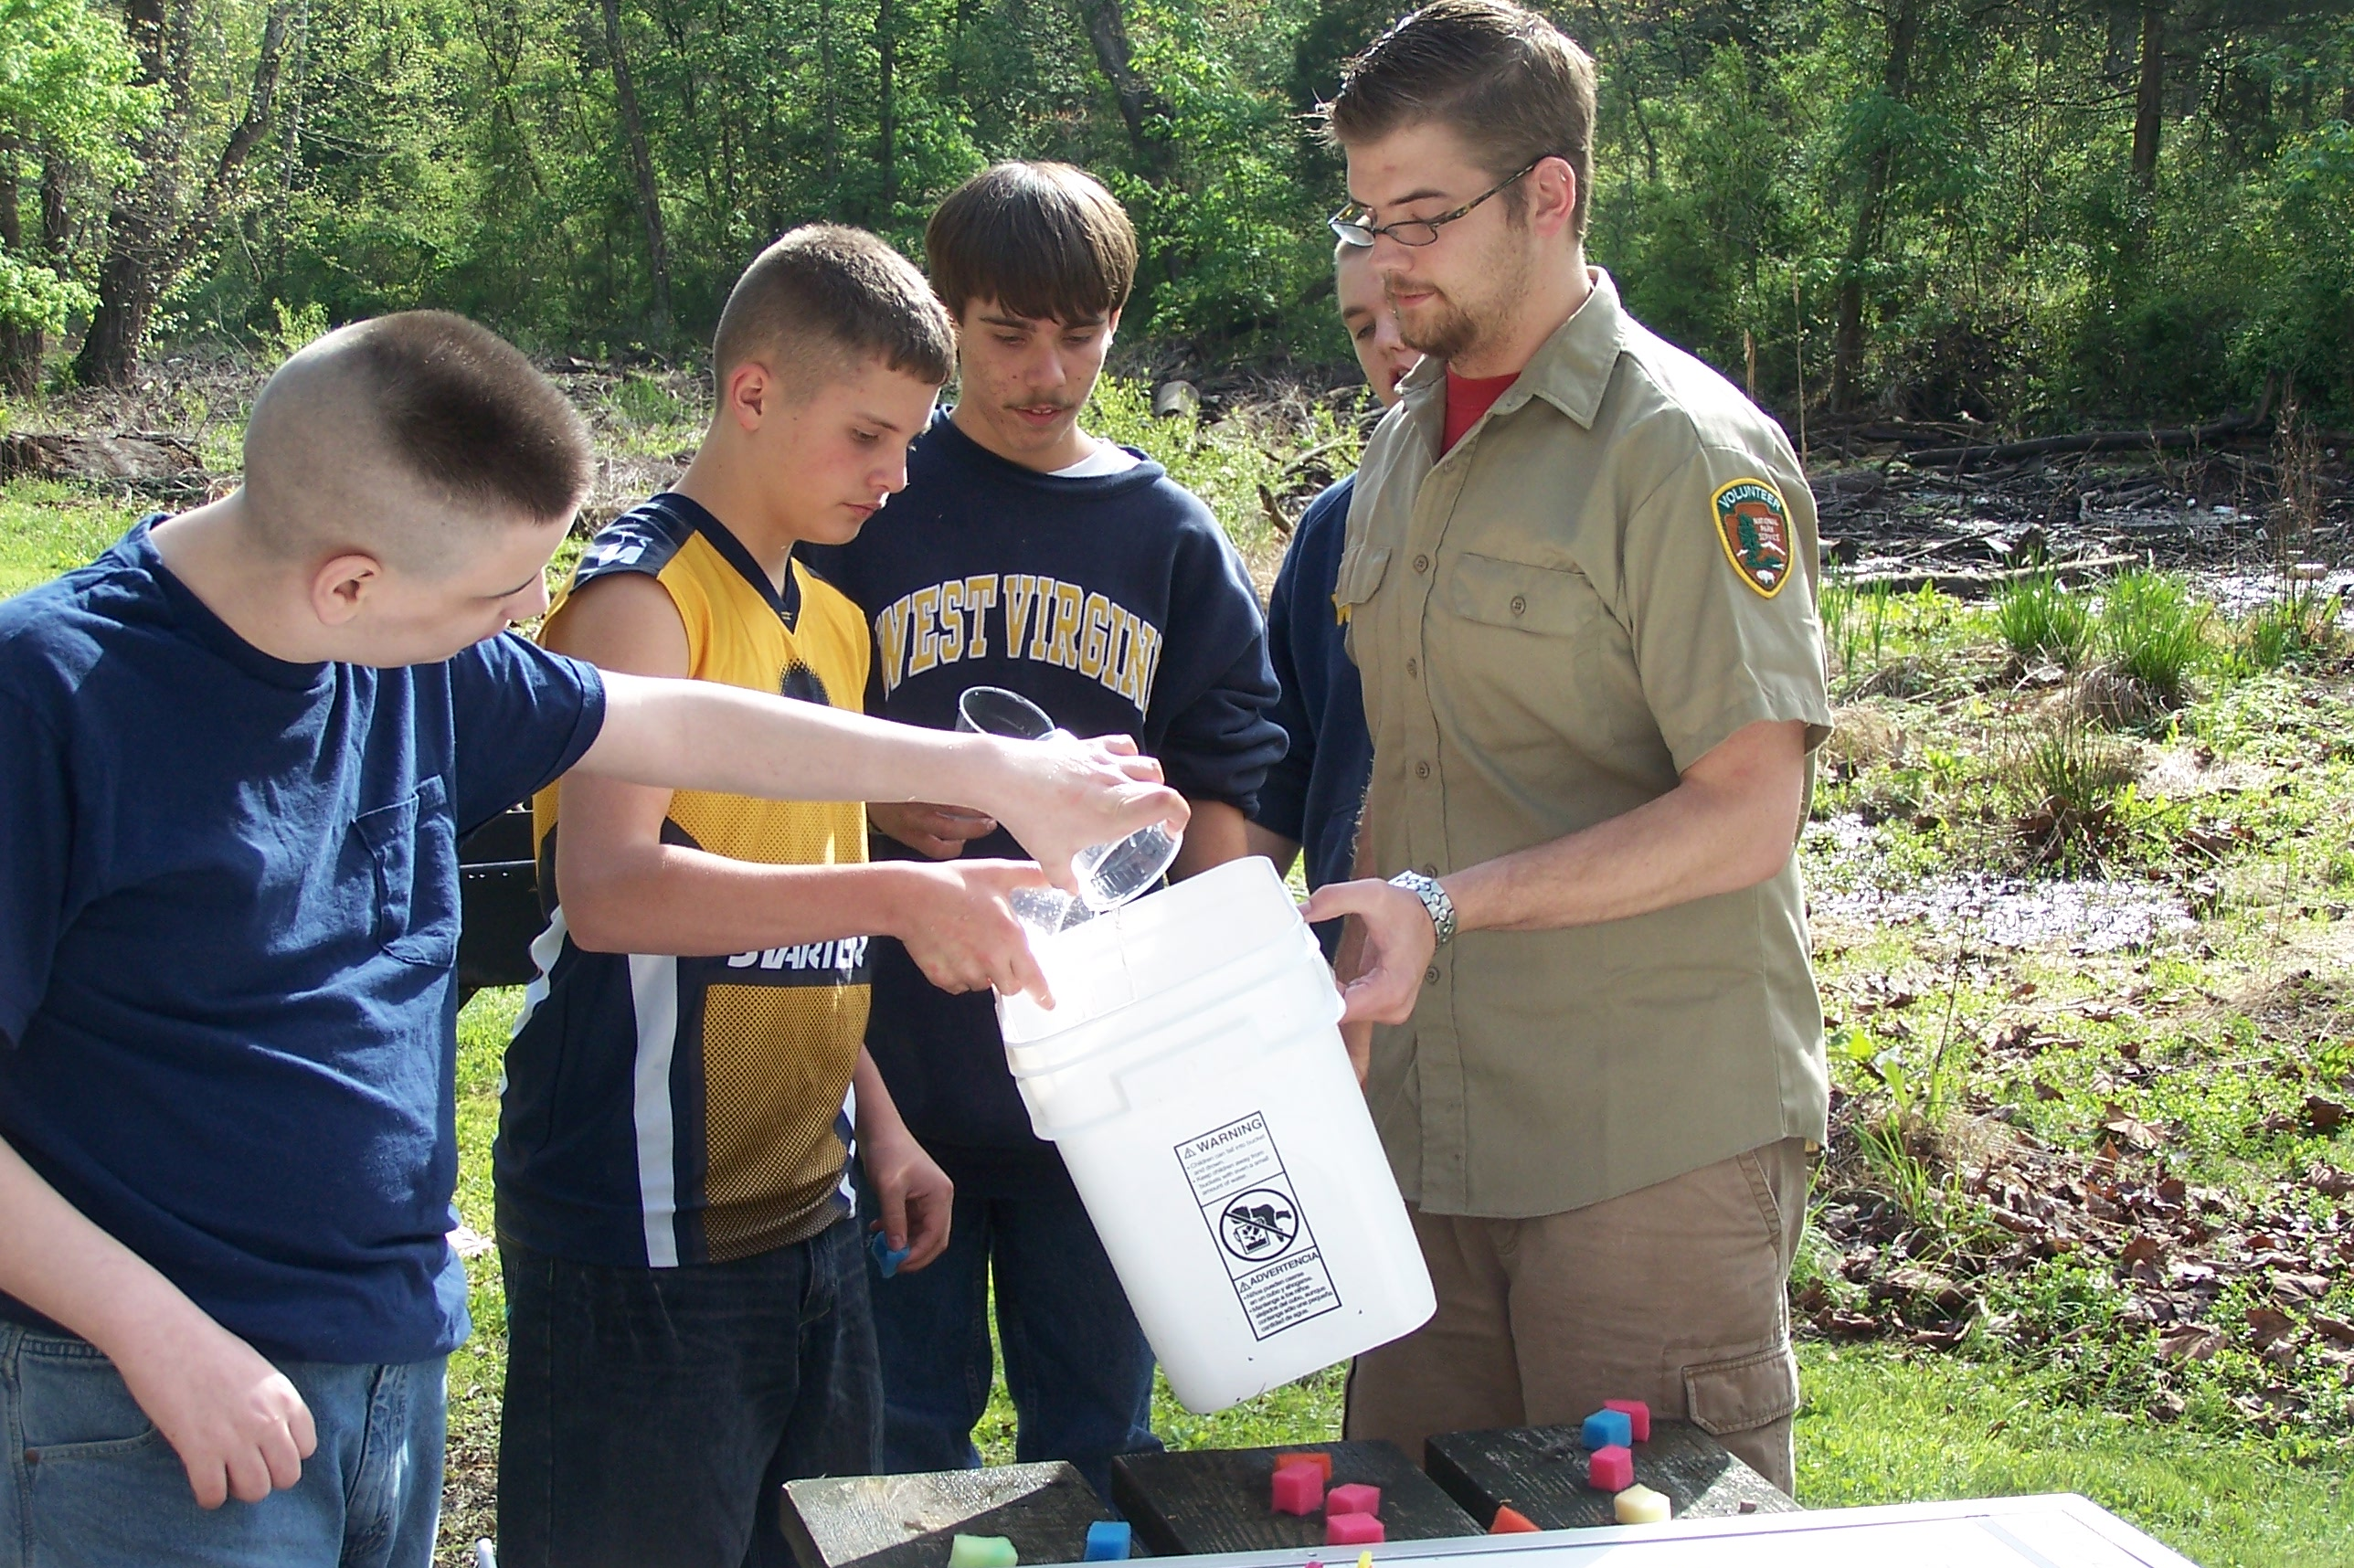 Volunteer assists with environmental education program